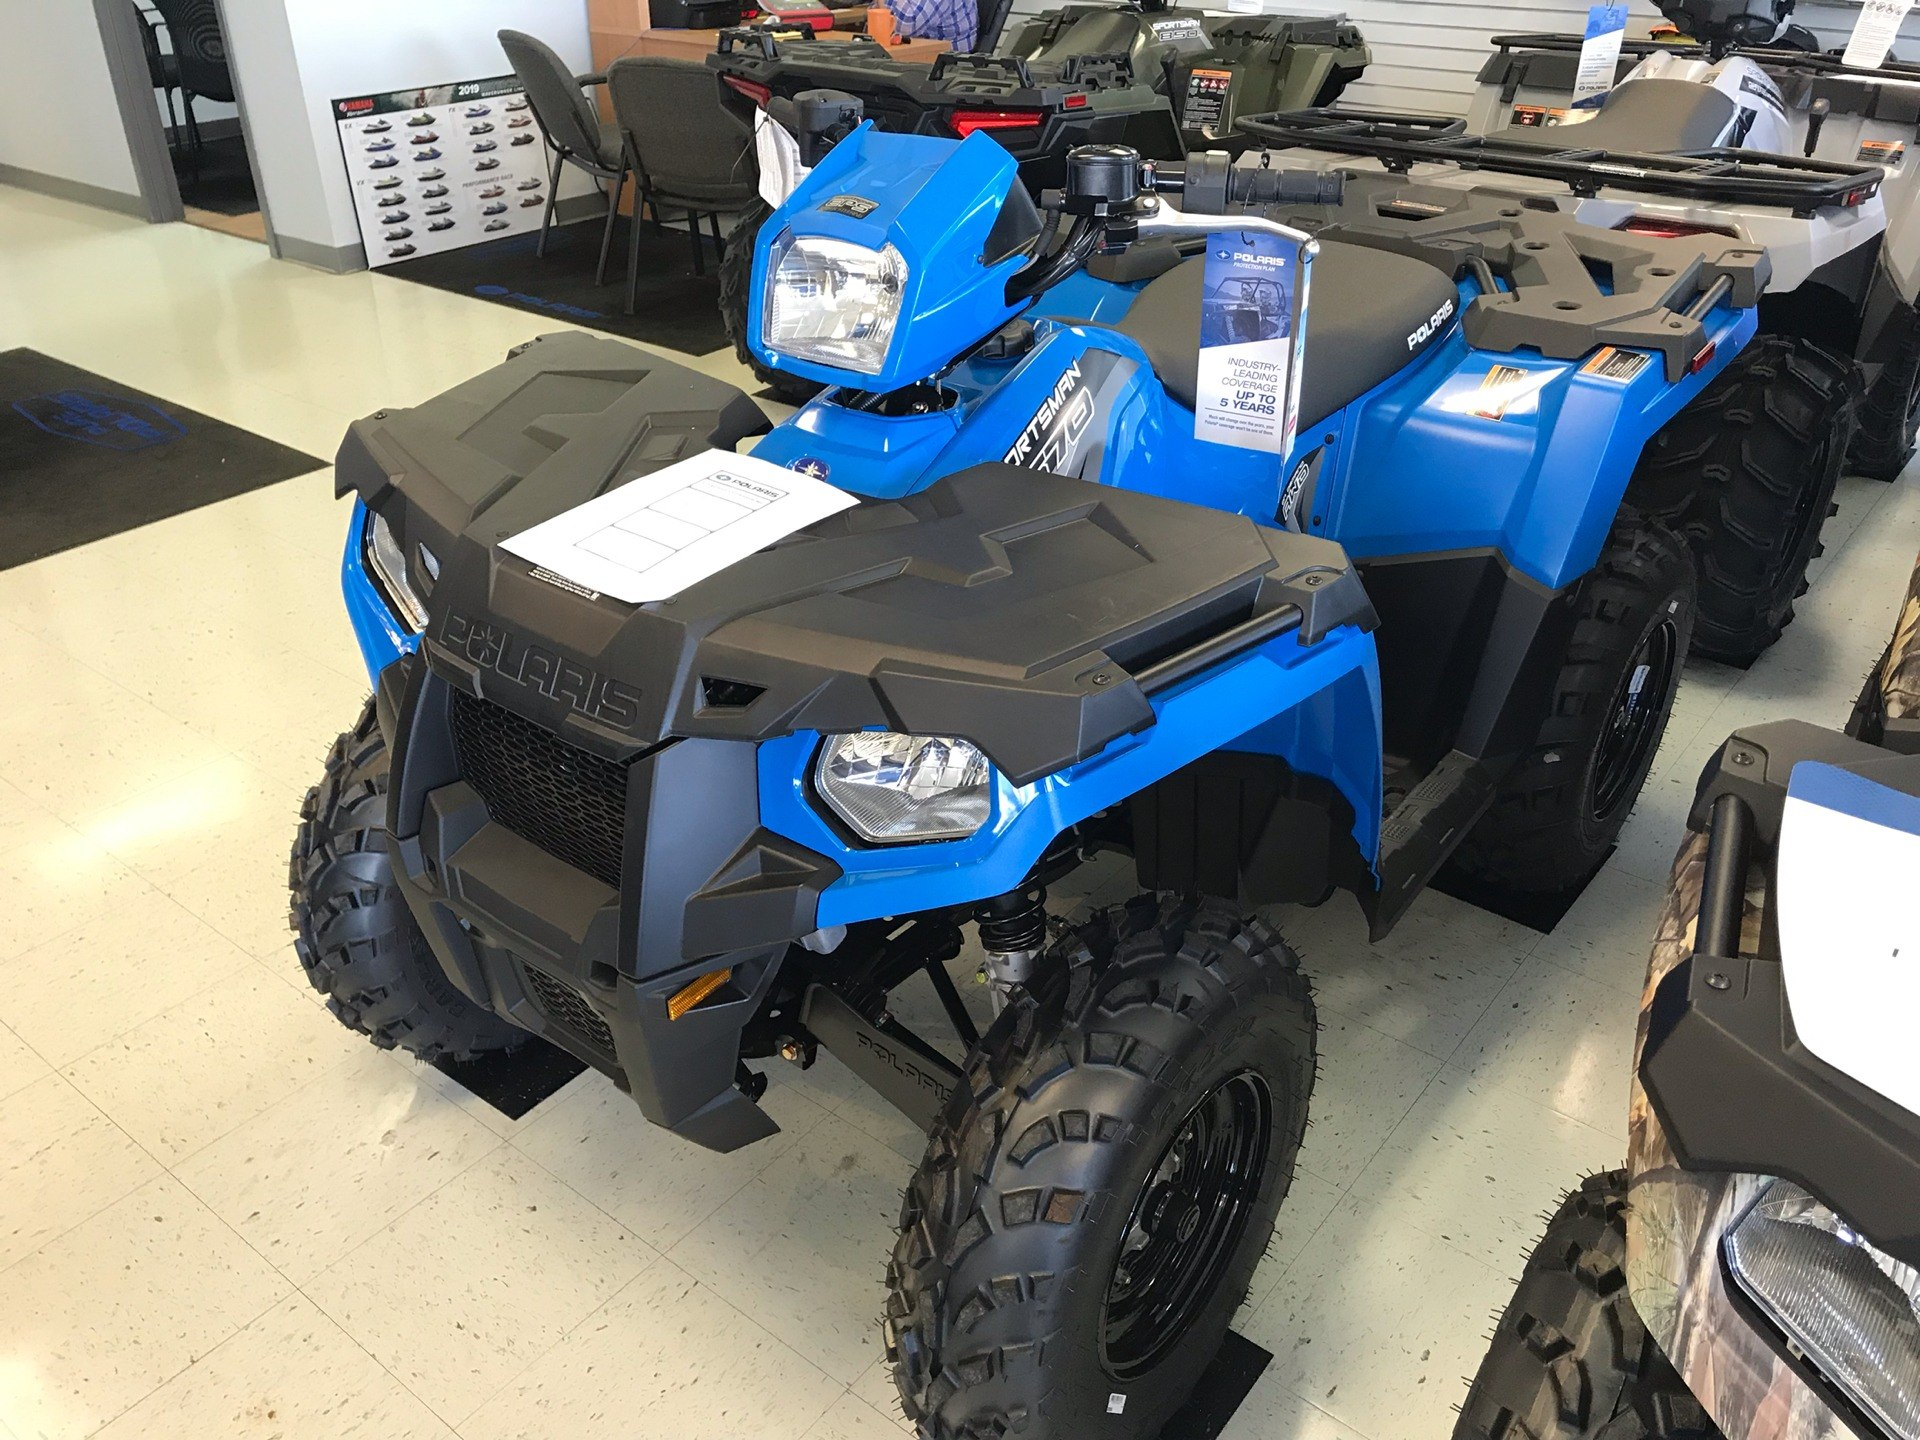 2019 Polaris Sportsman 570 EPS in Forest, Virginia - Photo 7